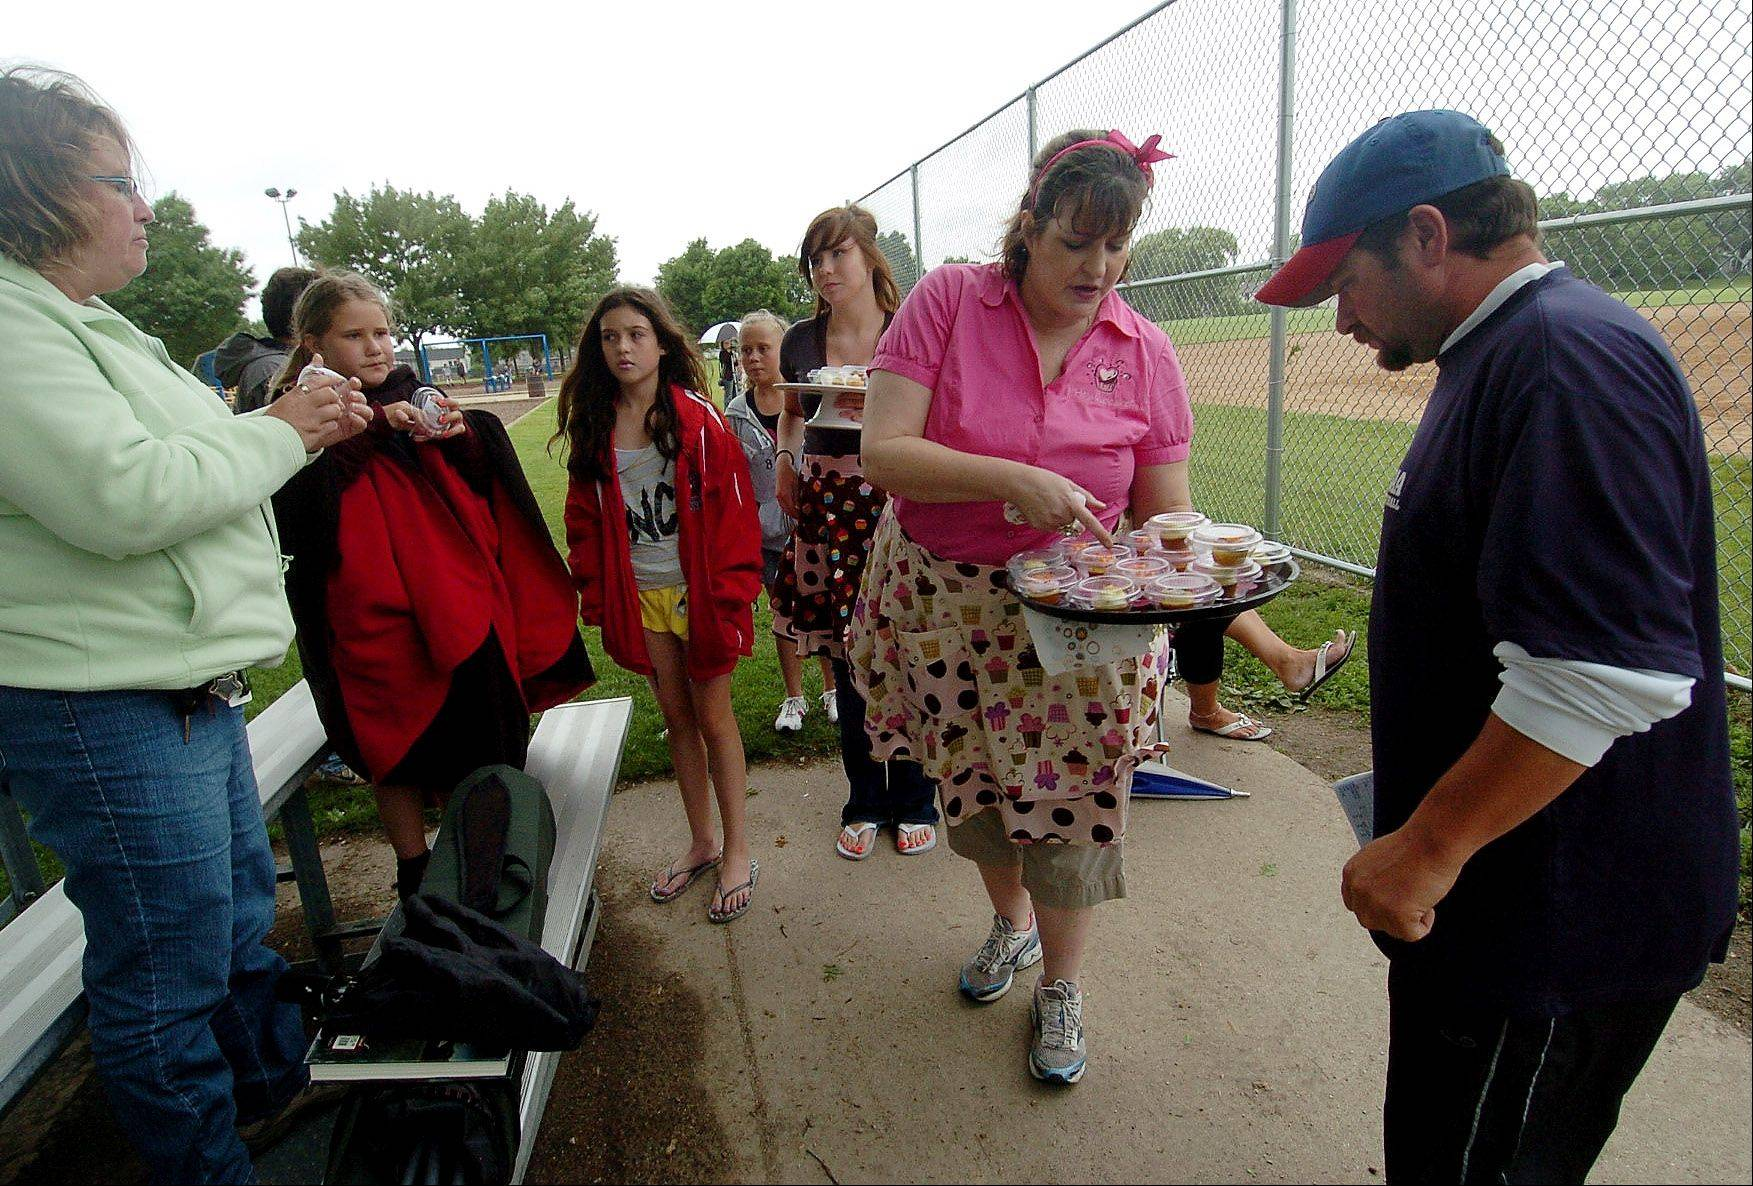 Angie DeFabis-Moeller, owner of Cruisin' Cupcakes, offers a cupcake to coach Steve Geotsalitis of the Schaumburg Athletic Association Jayhawks.